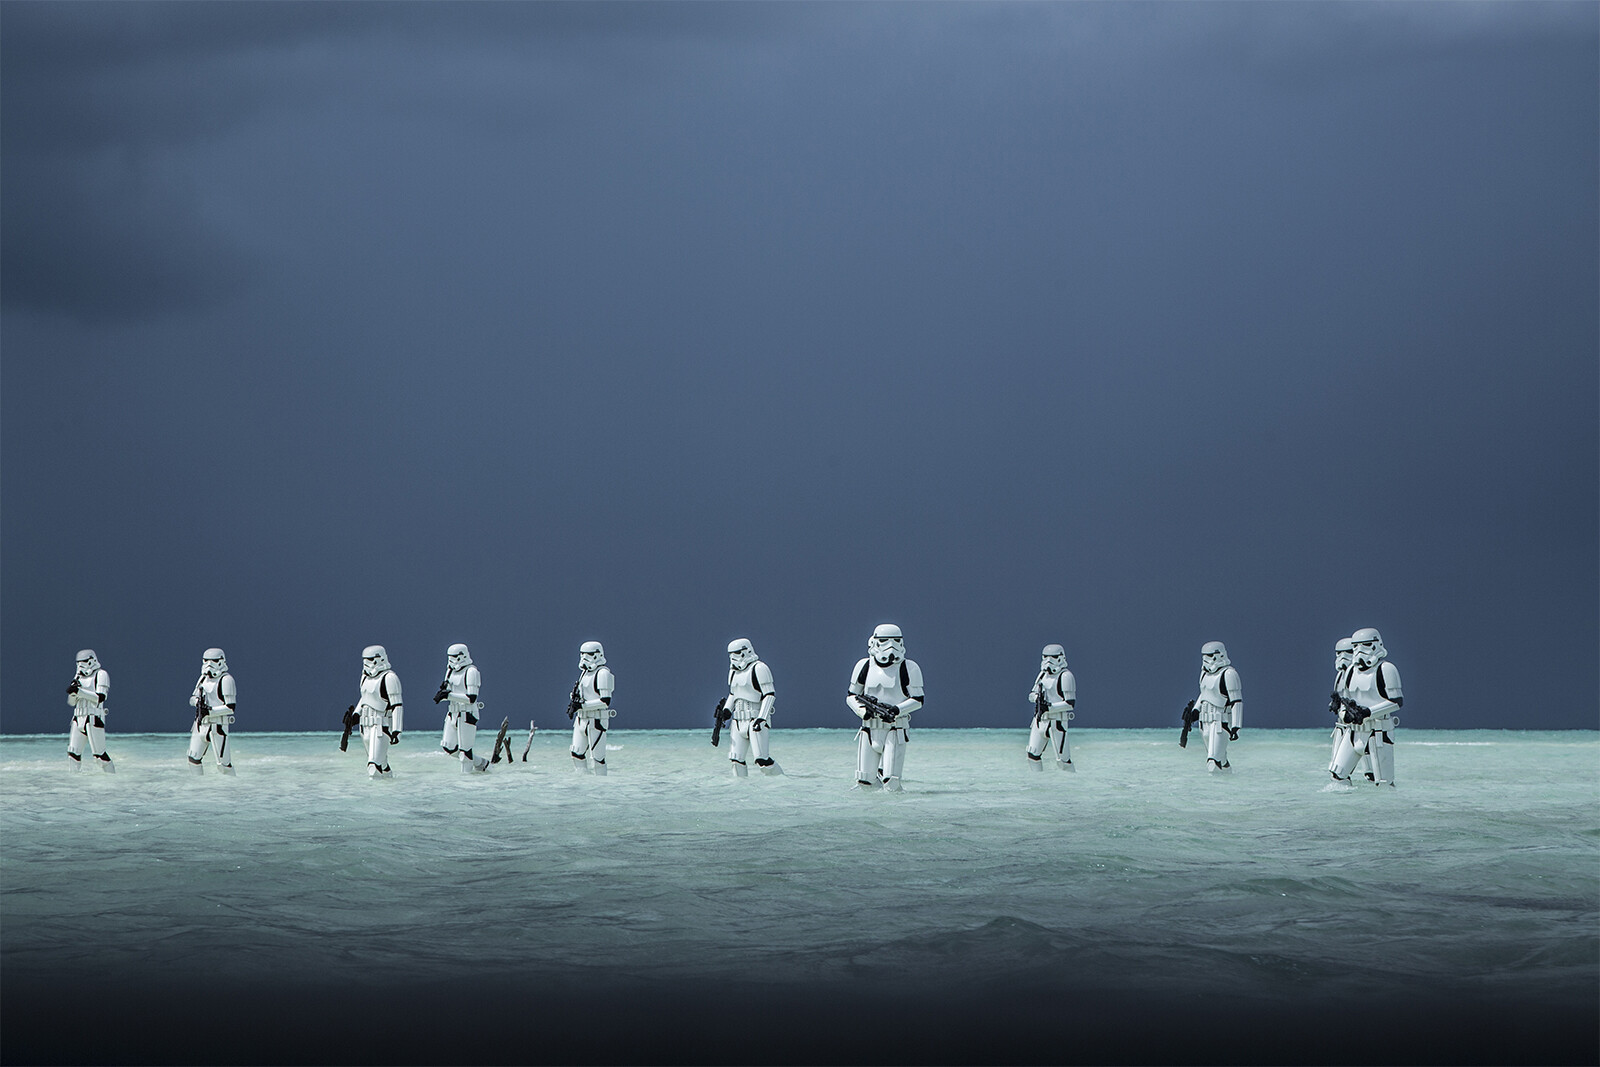 This is the Rogue One promotional image I based the above poster print on.